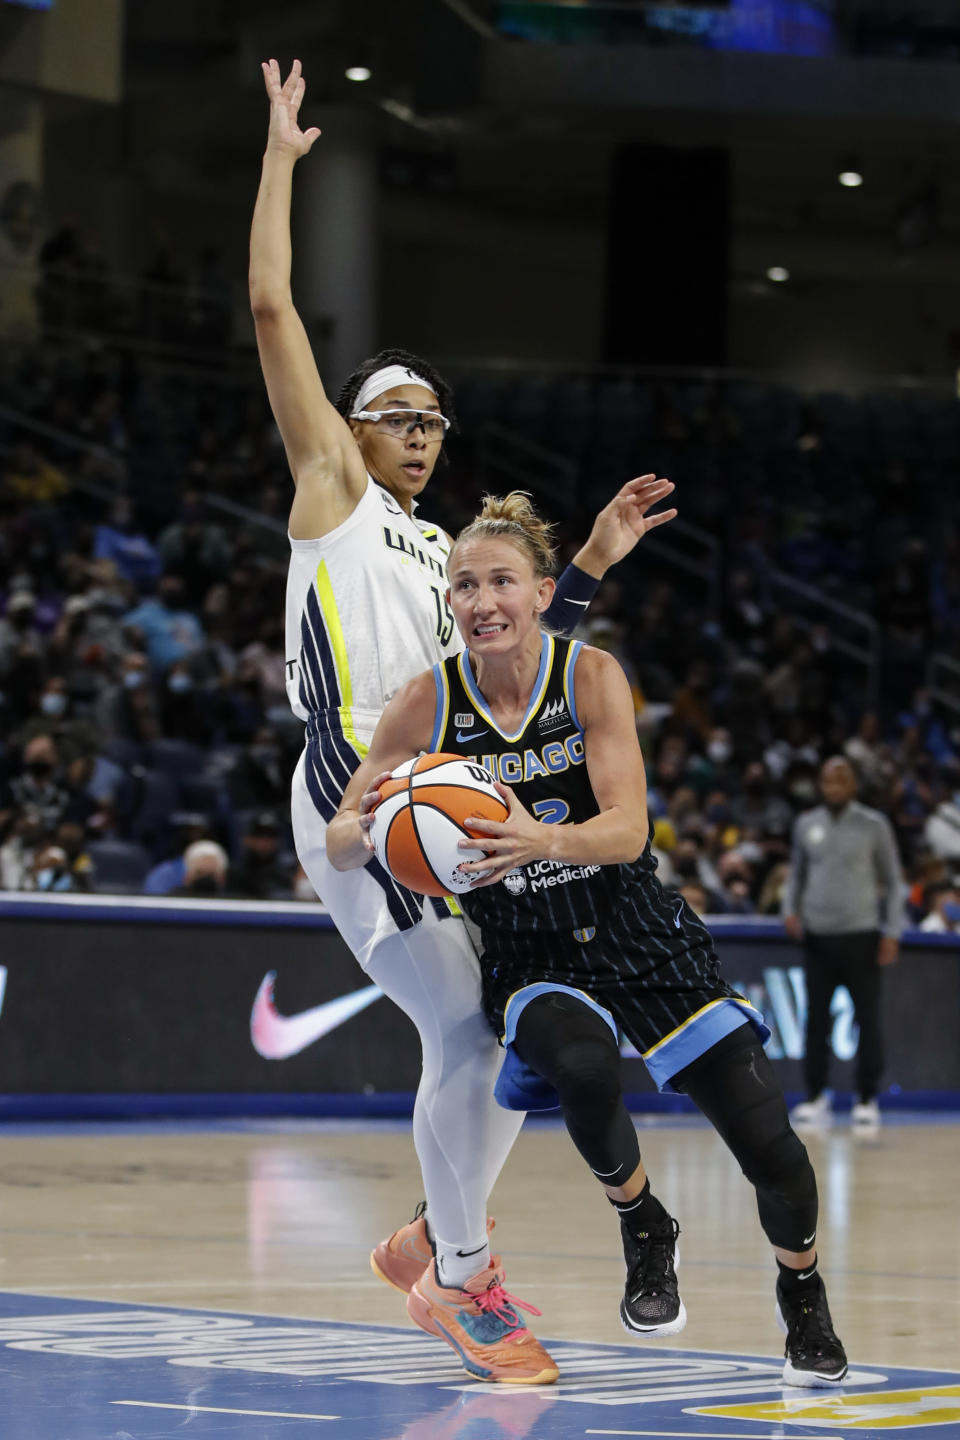 Chicago Sky guard Courtney Vandersloot (22) drives to the basket past Dallas Wings guard Allisha Gray (15) during the first half in the first round of the WNBA basketball playoffs, Thursday, Sept. 23, 2021, in Chicago. (AP Photo/Kamil Krzaczynski)